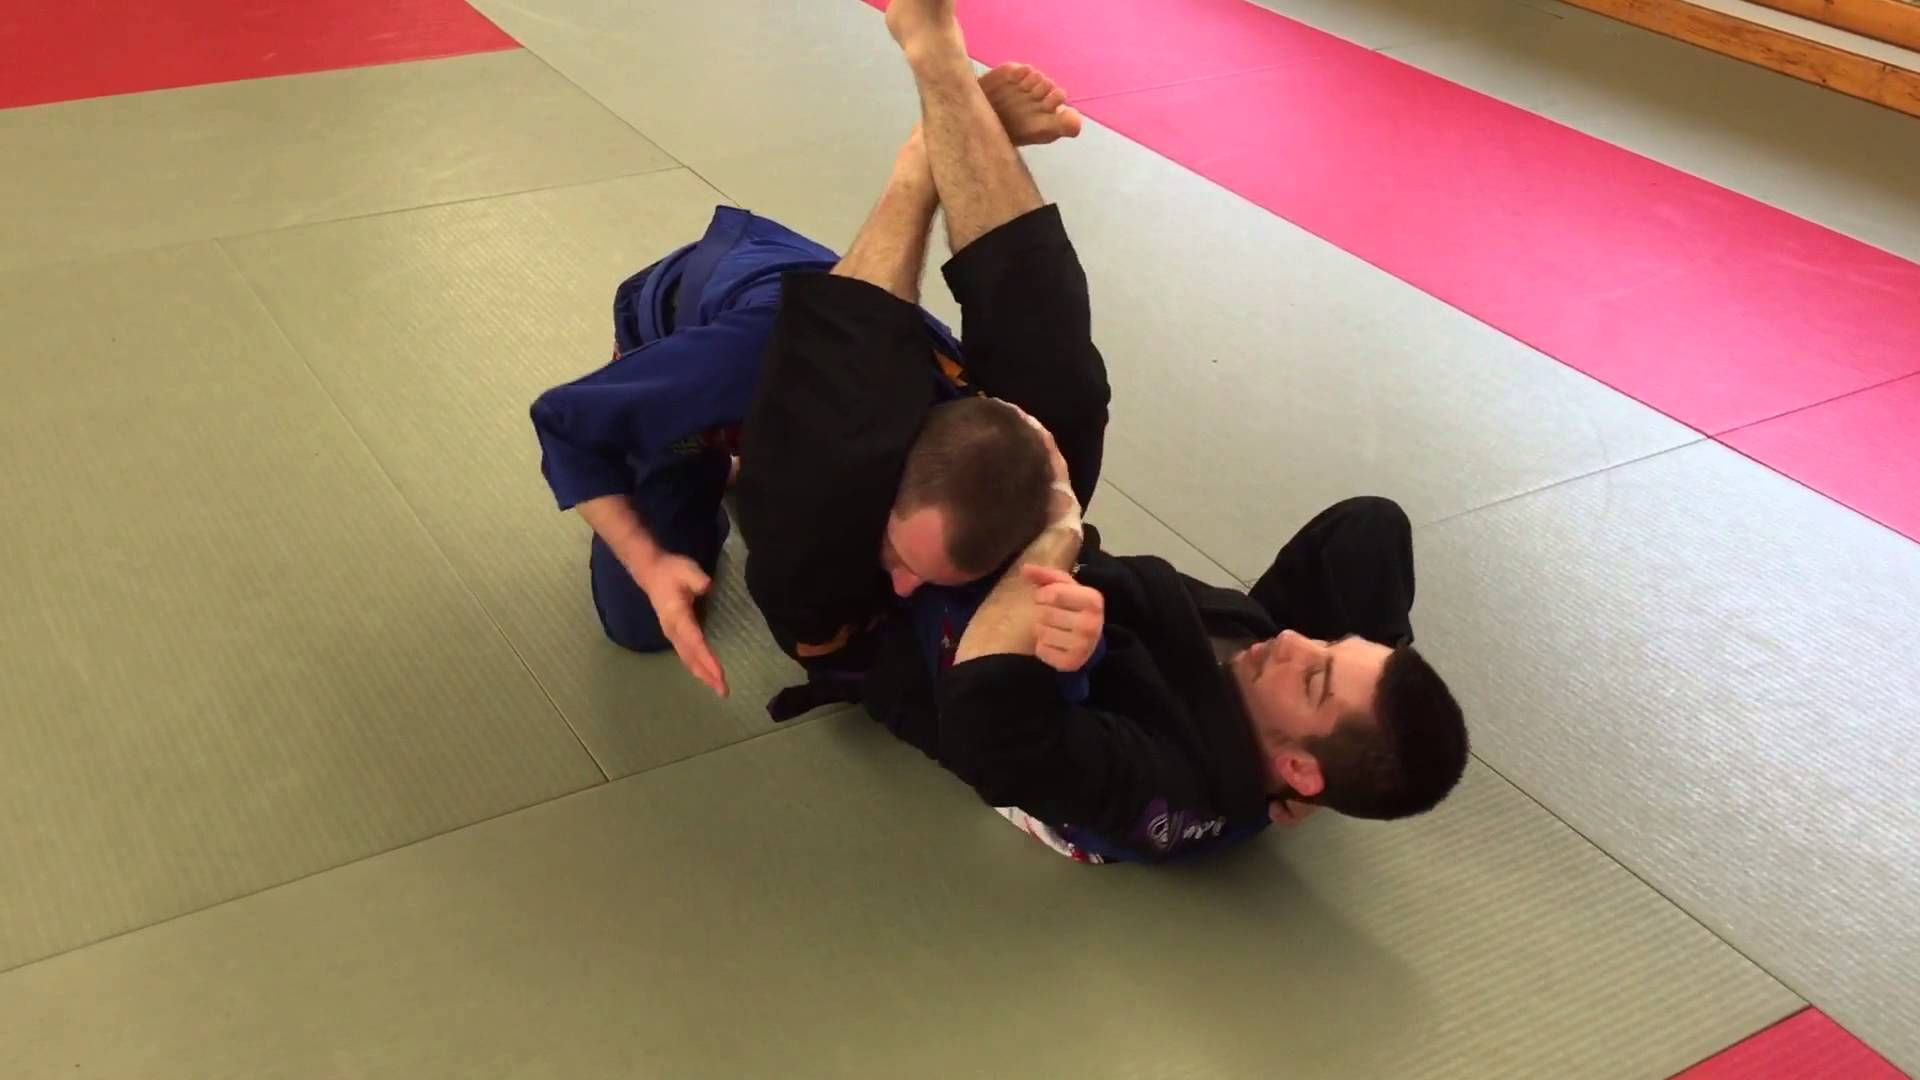 Back Lapel Guard Submissions and Sweep